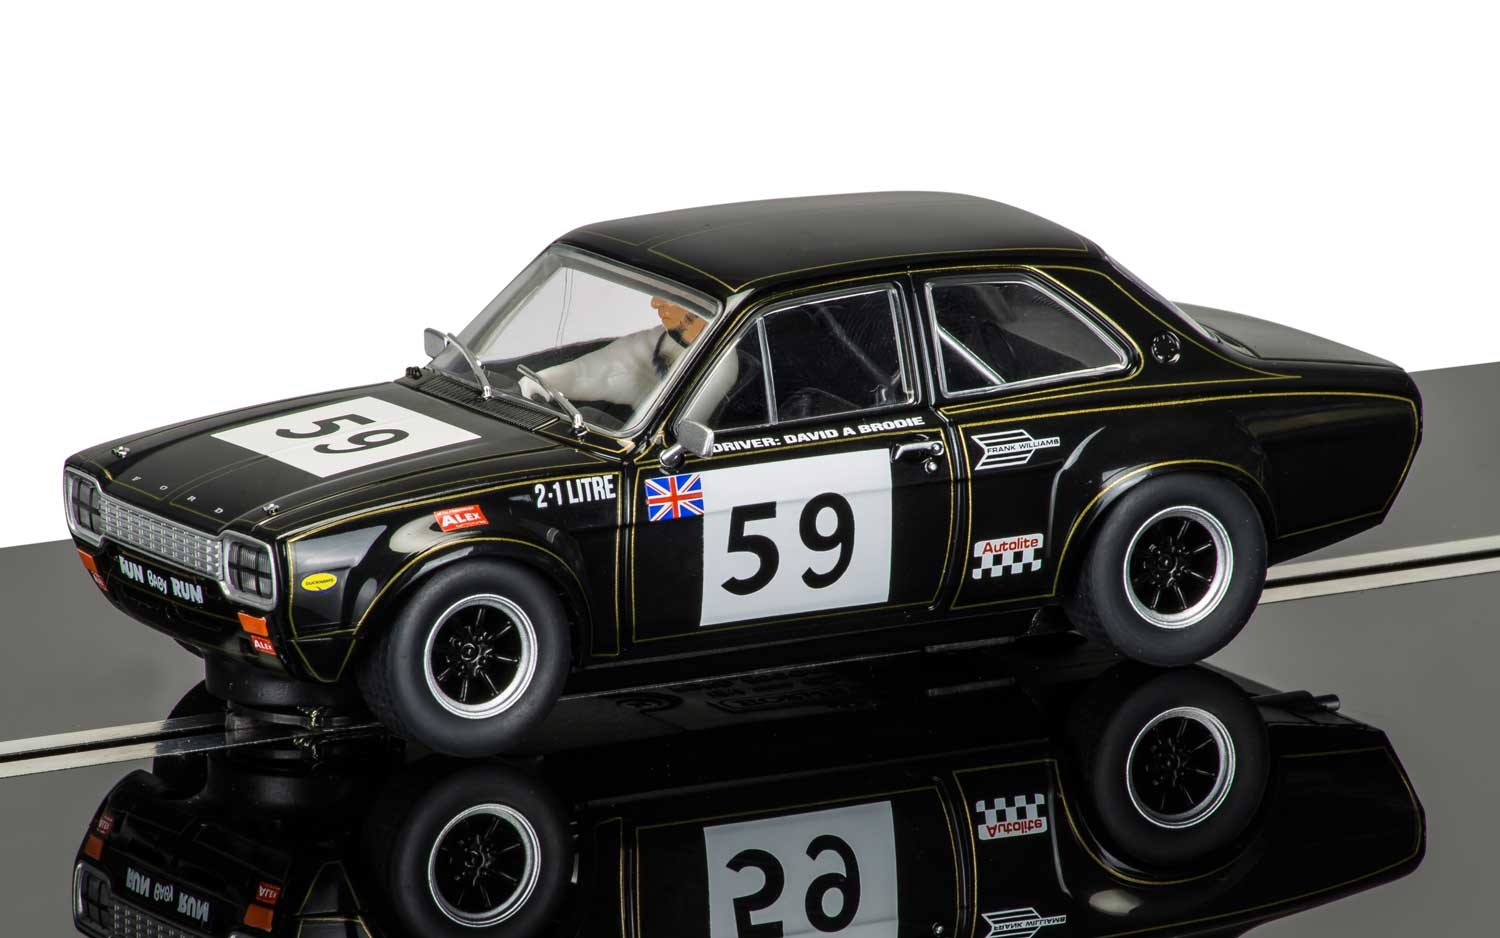 Ford Escort Mk1 - Crystal Palace 1971 David Brodie #59 1/32 Slot Car